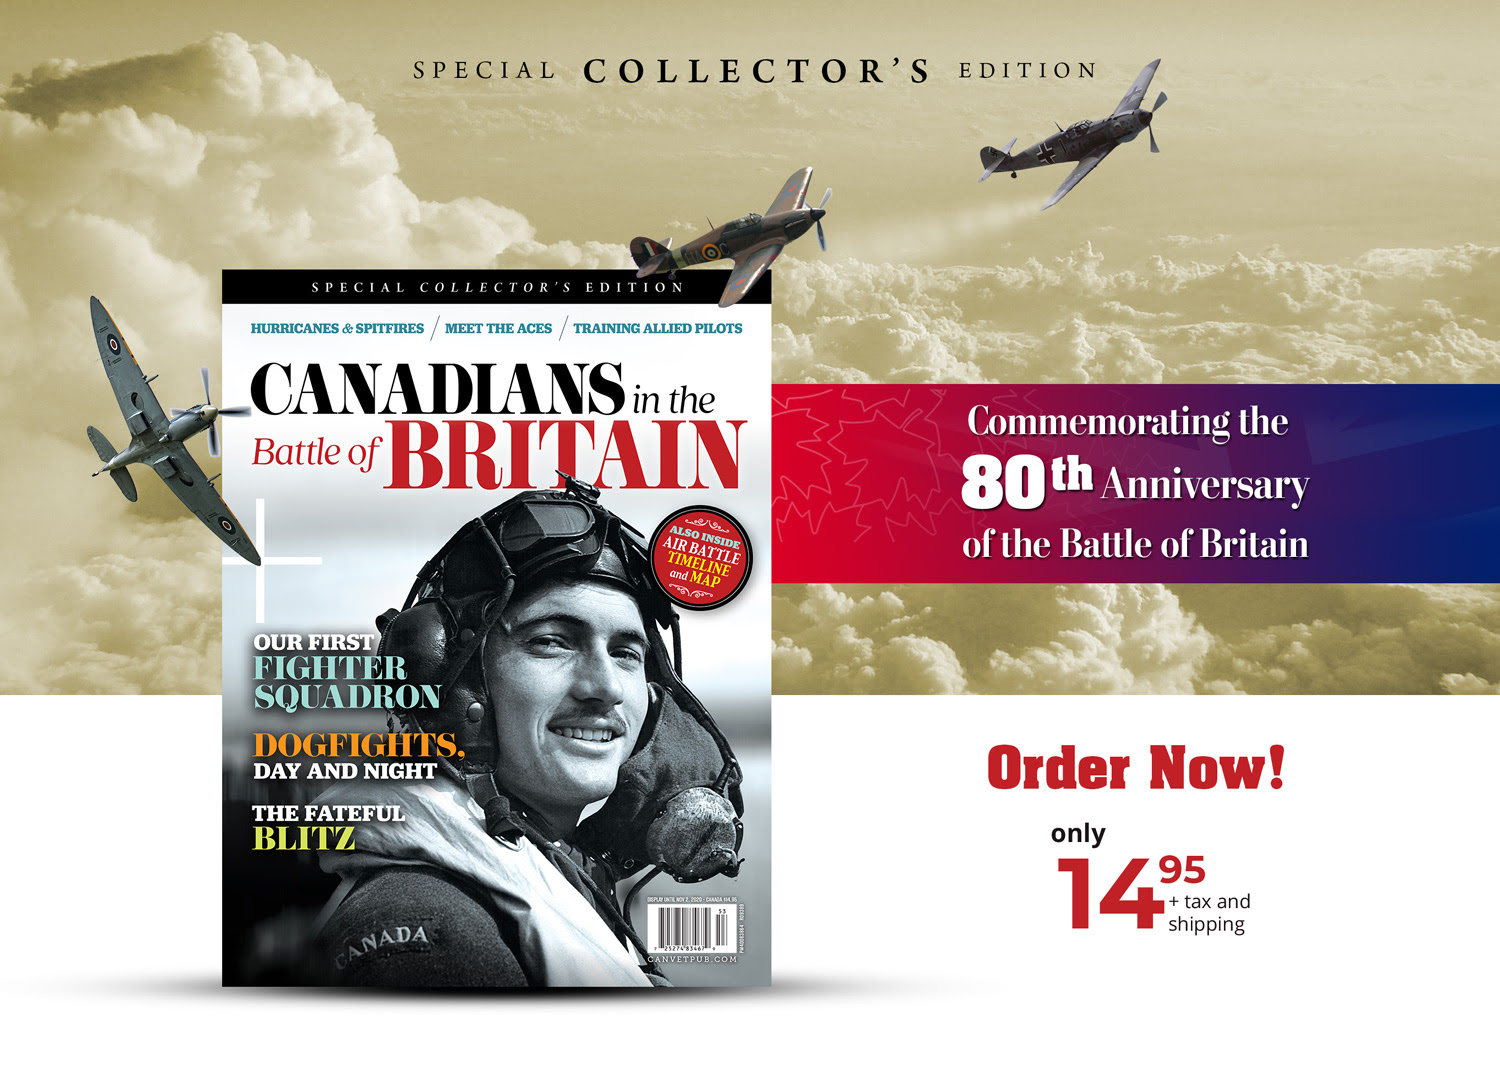 Canadians in the Battle of Britain